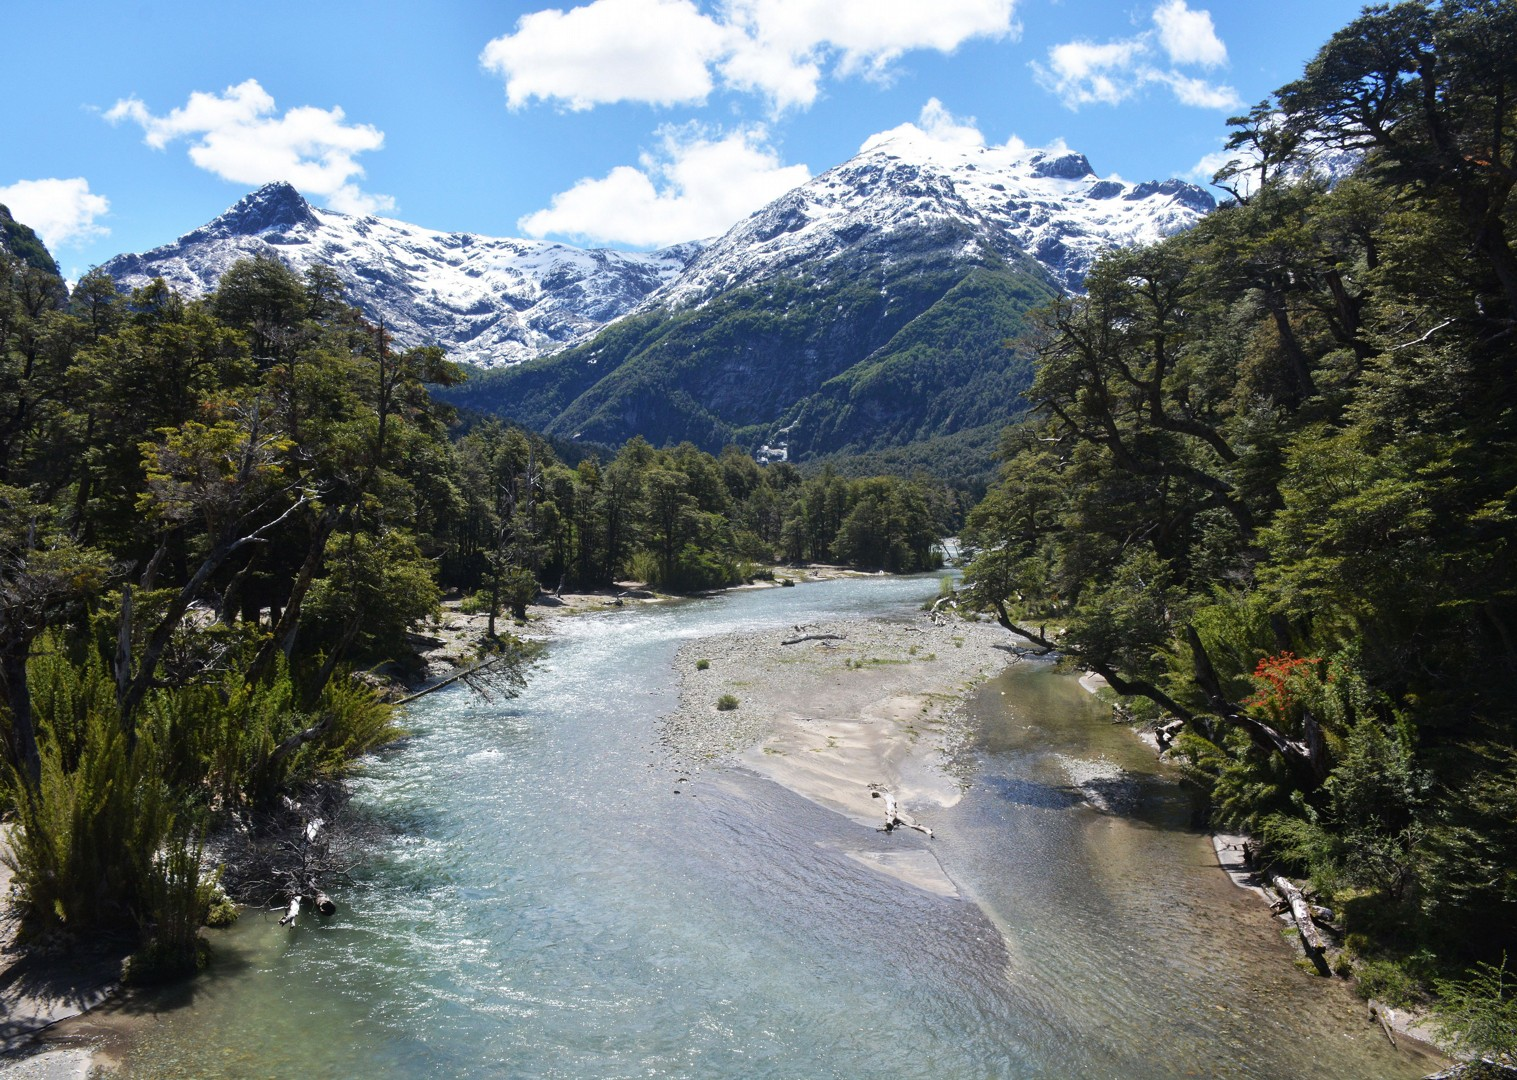 saddle-skedaddle-guided-road-cycling-holiday-lake-district-explorer-chile-and-argentina.jpg - Chile and Argentina - Lake District Road Explorer - Road Cycling